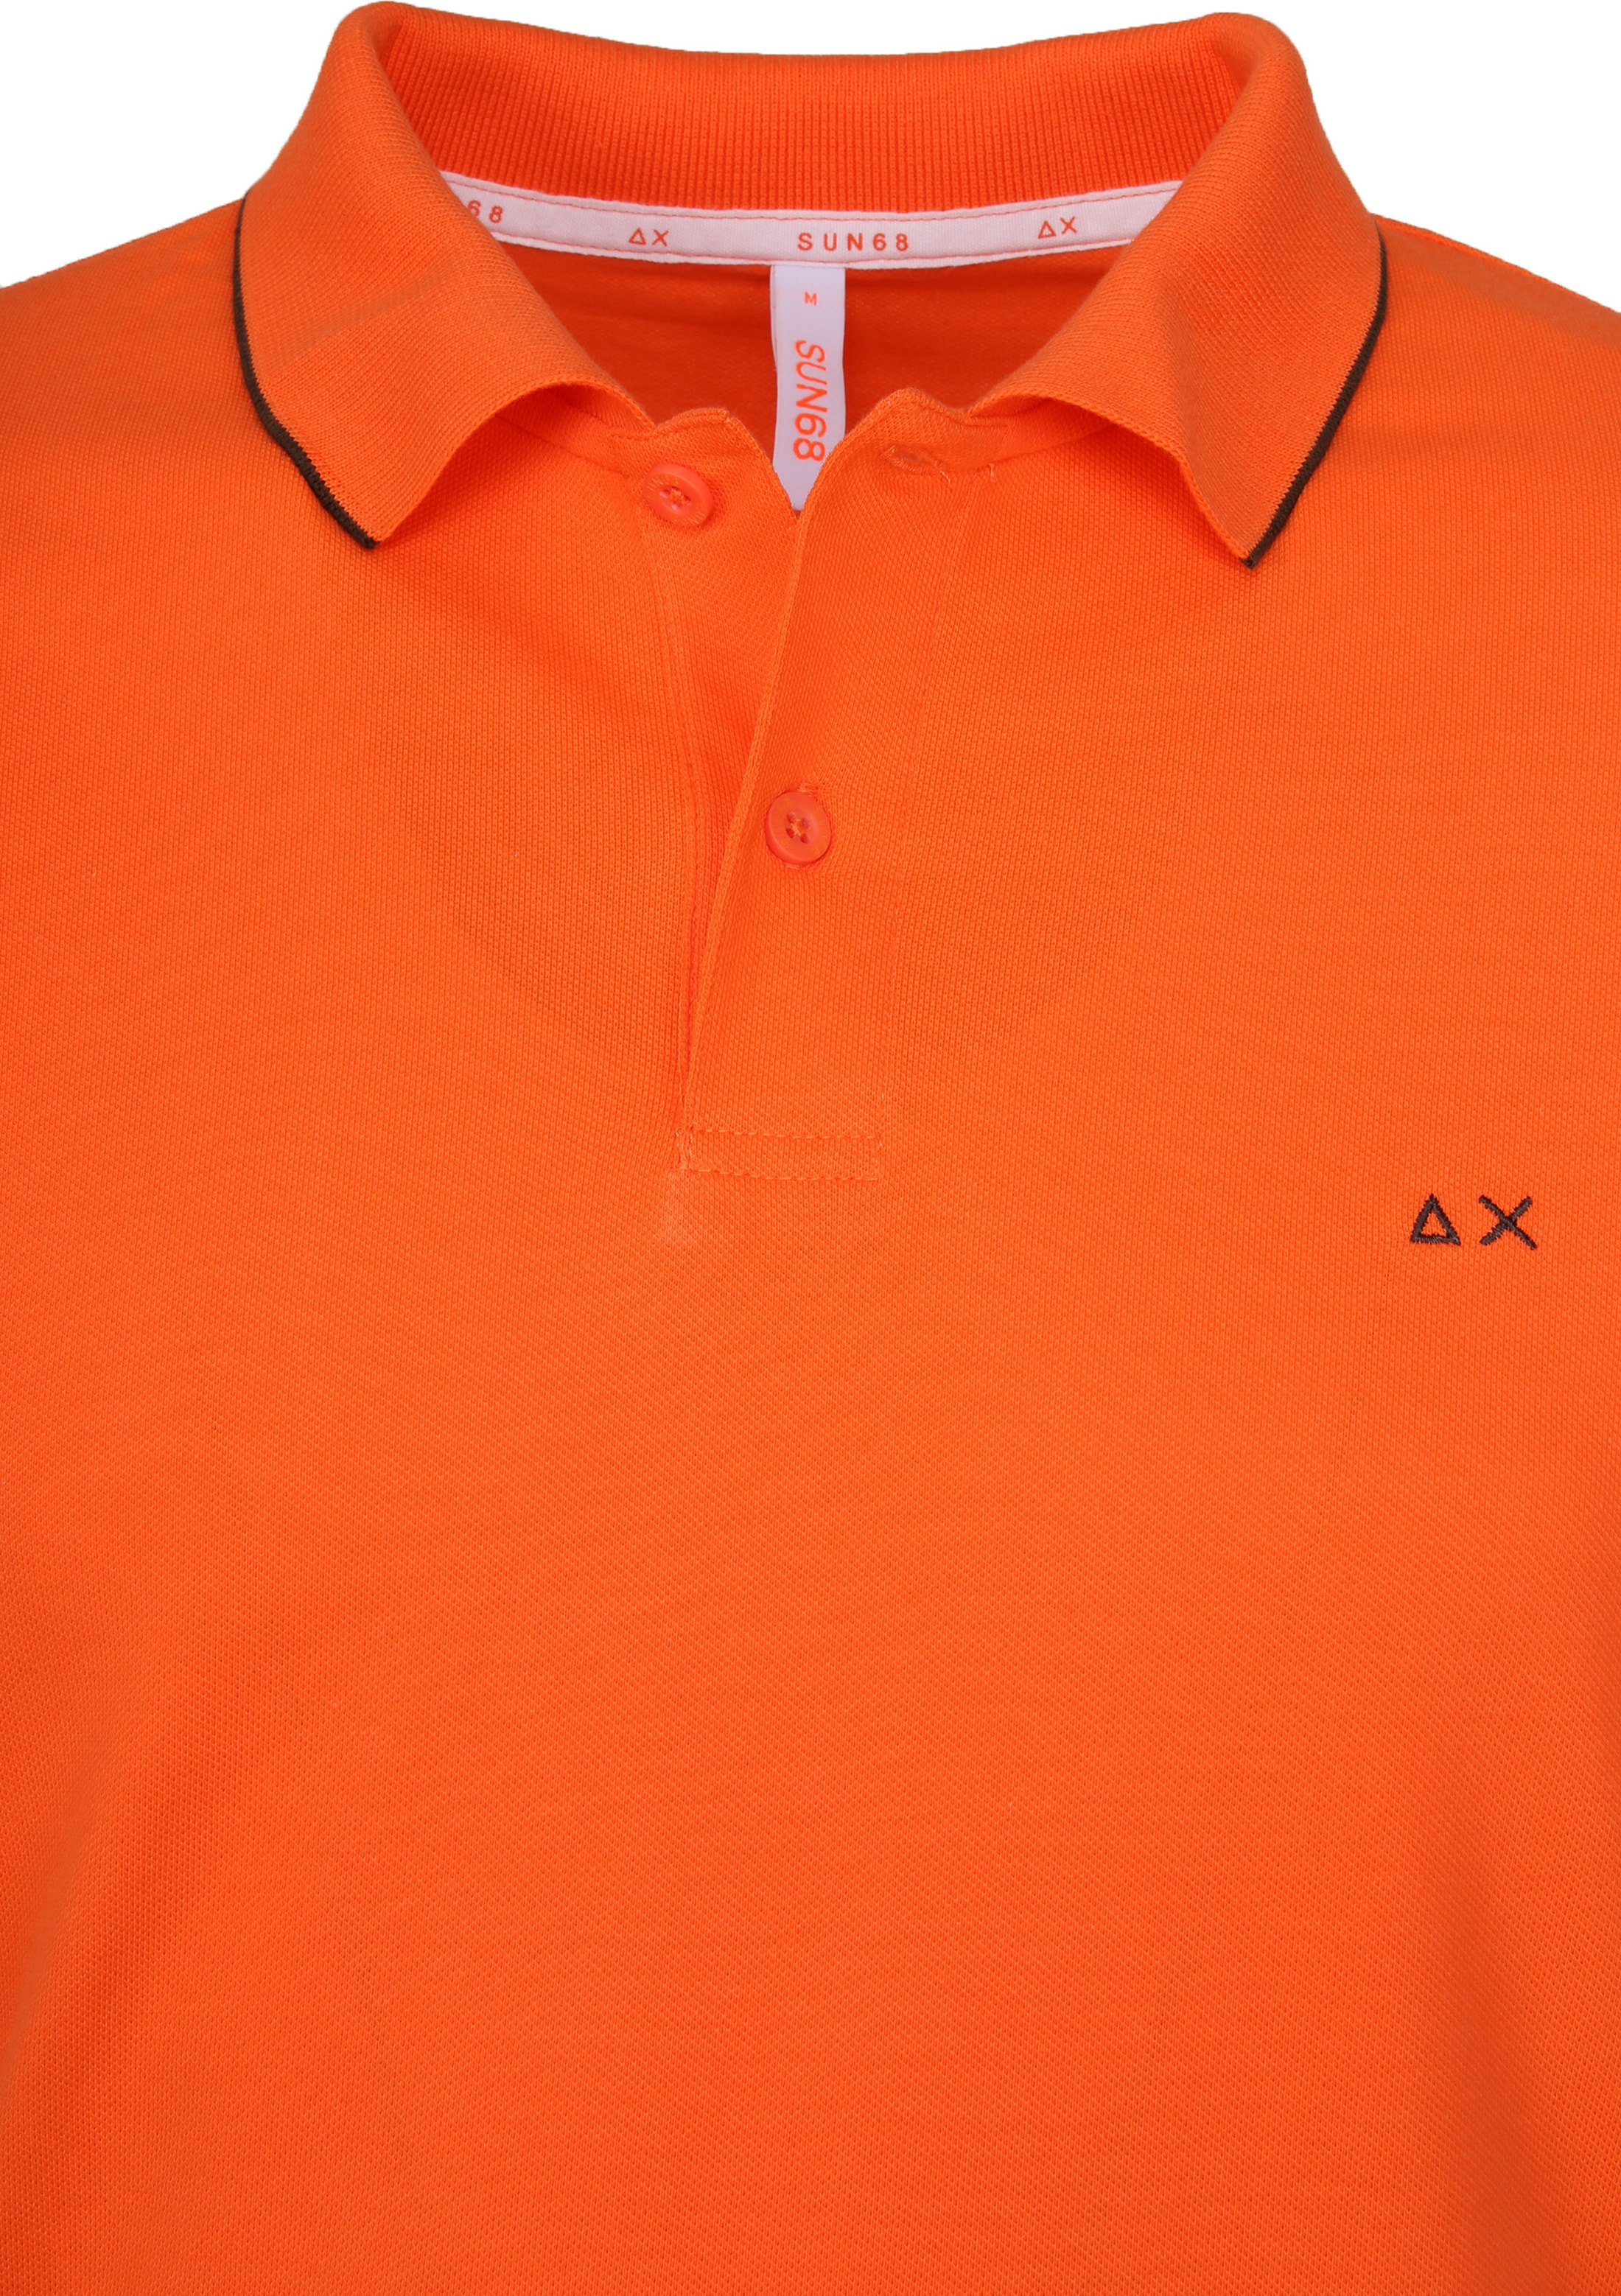 Sun68 Poloshirt Small Stripe Orange SF foto 1